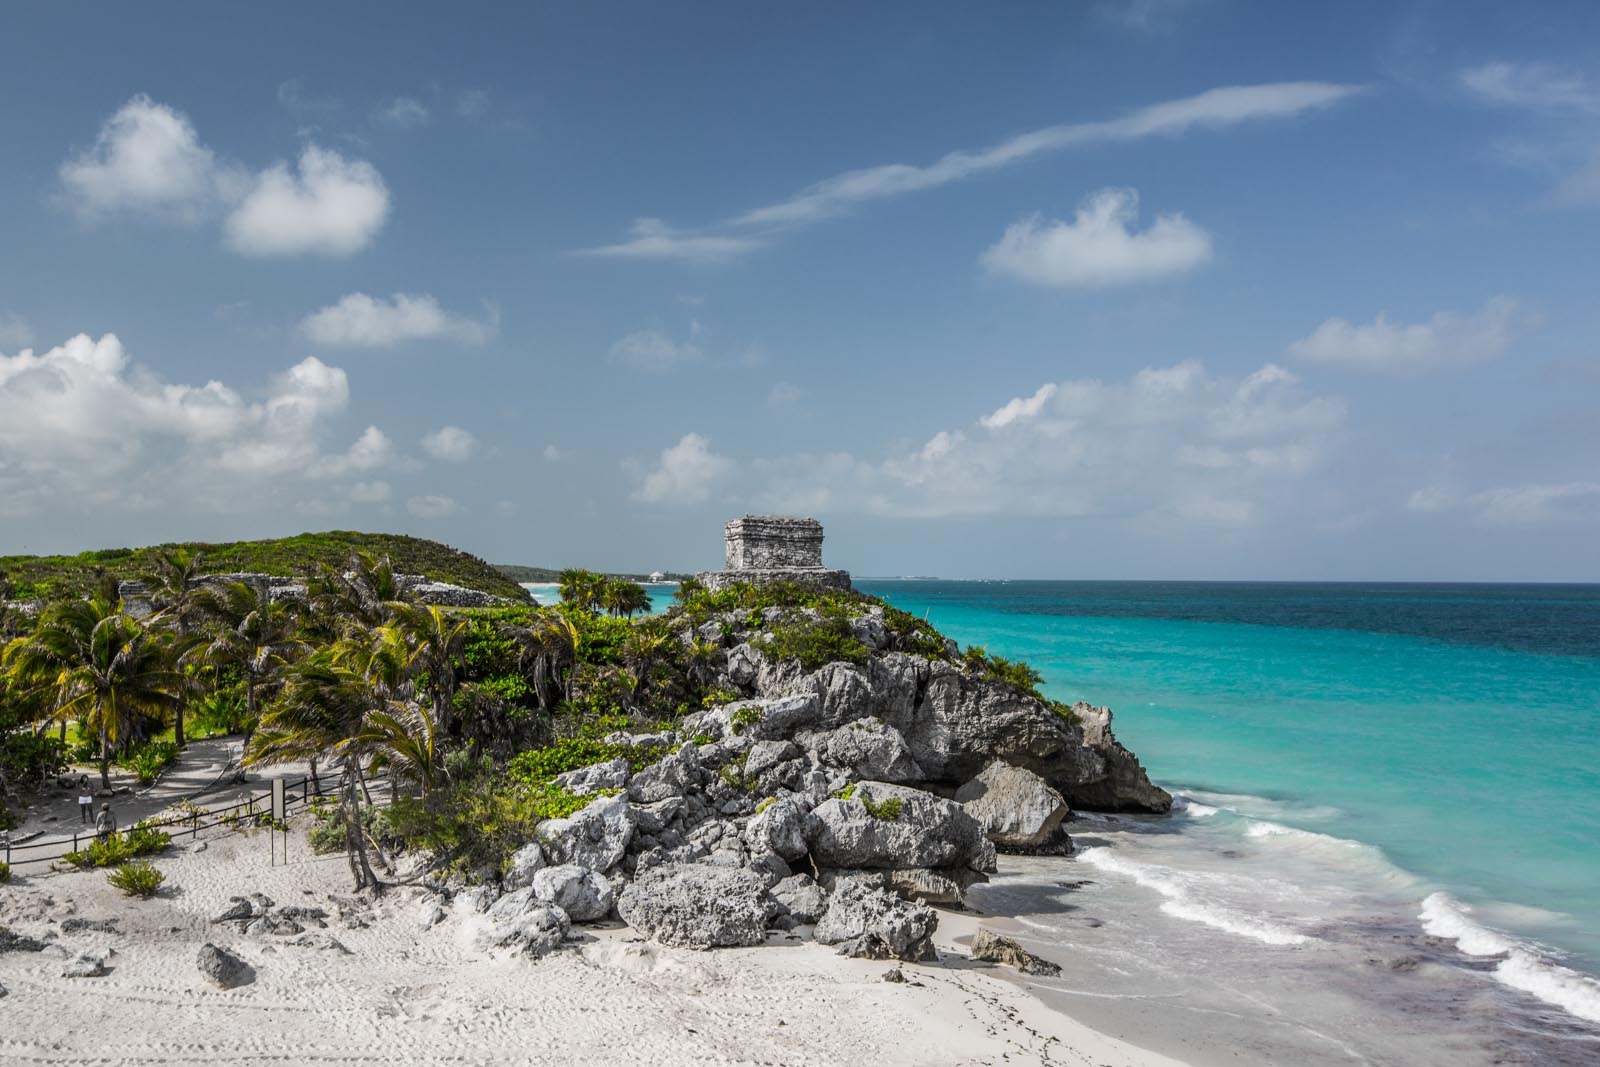 Beautiful view at the beachside Mayan ruins in Tulum.